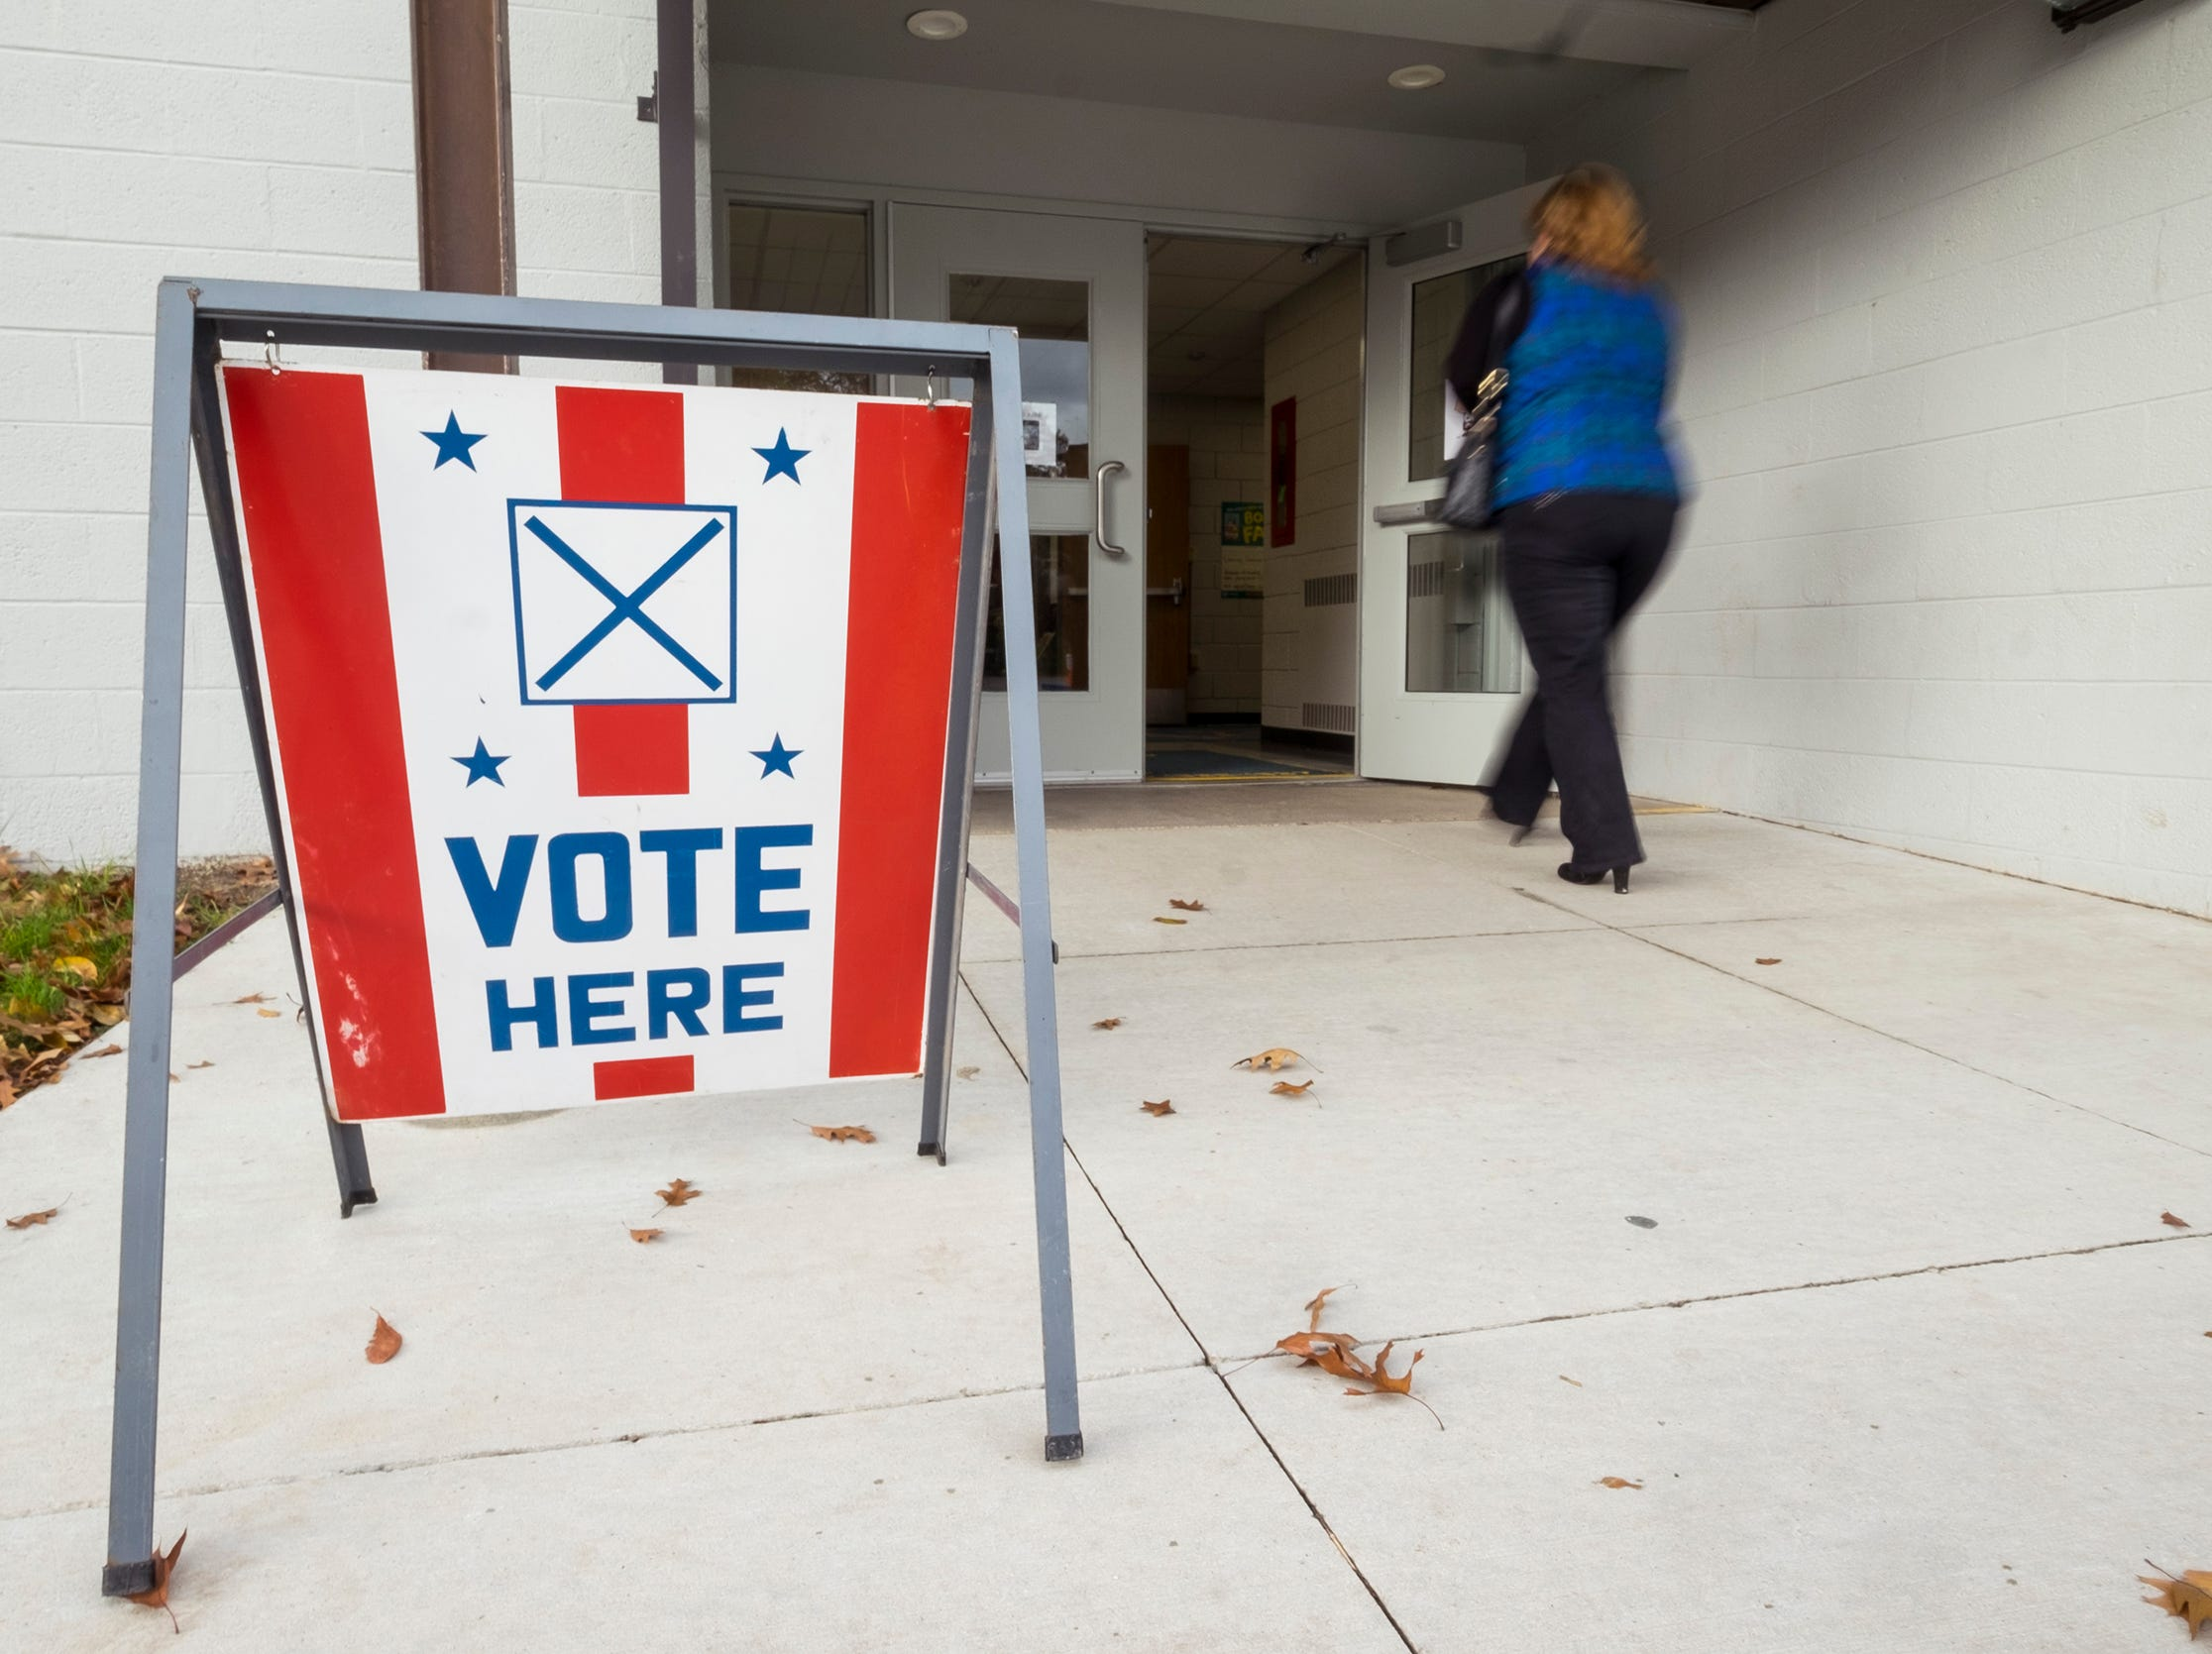 A voter walks into the precinct 1 voting location at Keewahdin Elementary Tuesday, Nov. 6, 2018 during mid-term elections.